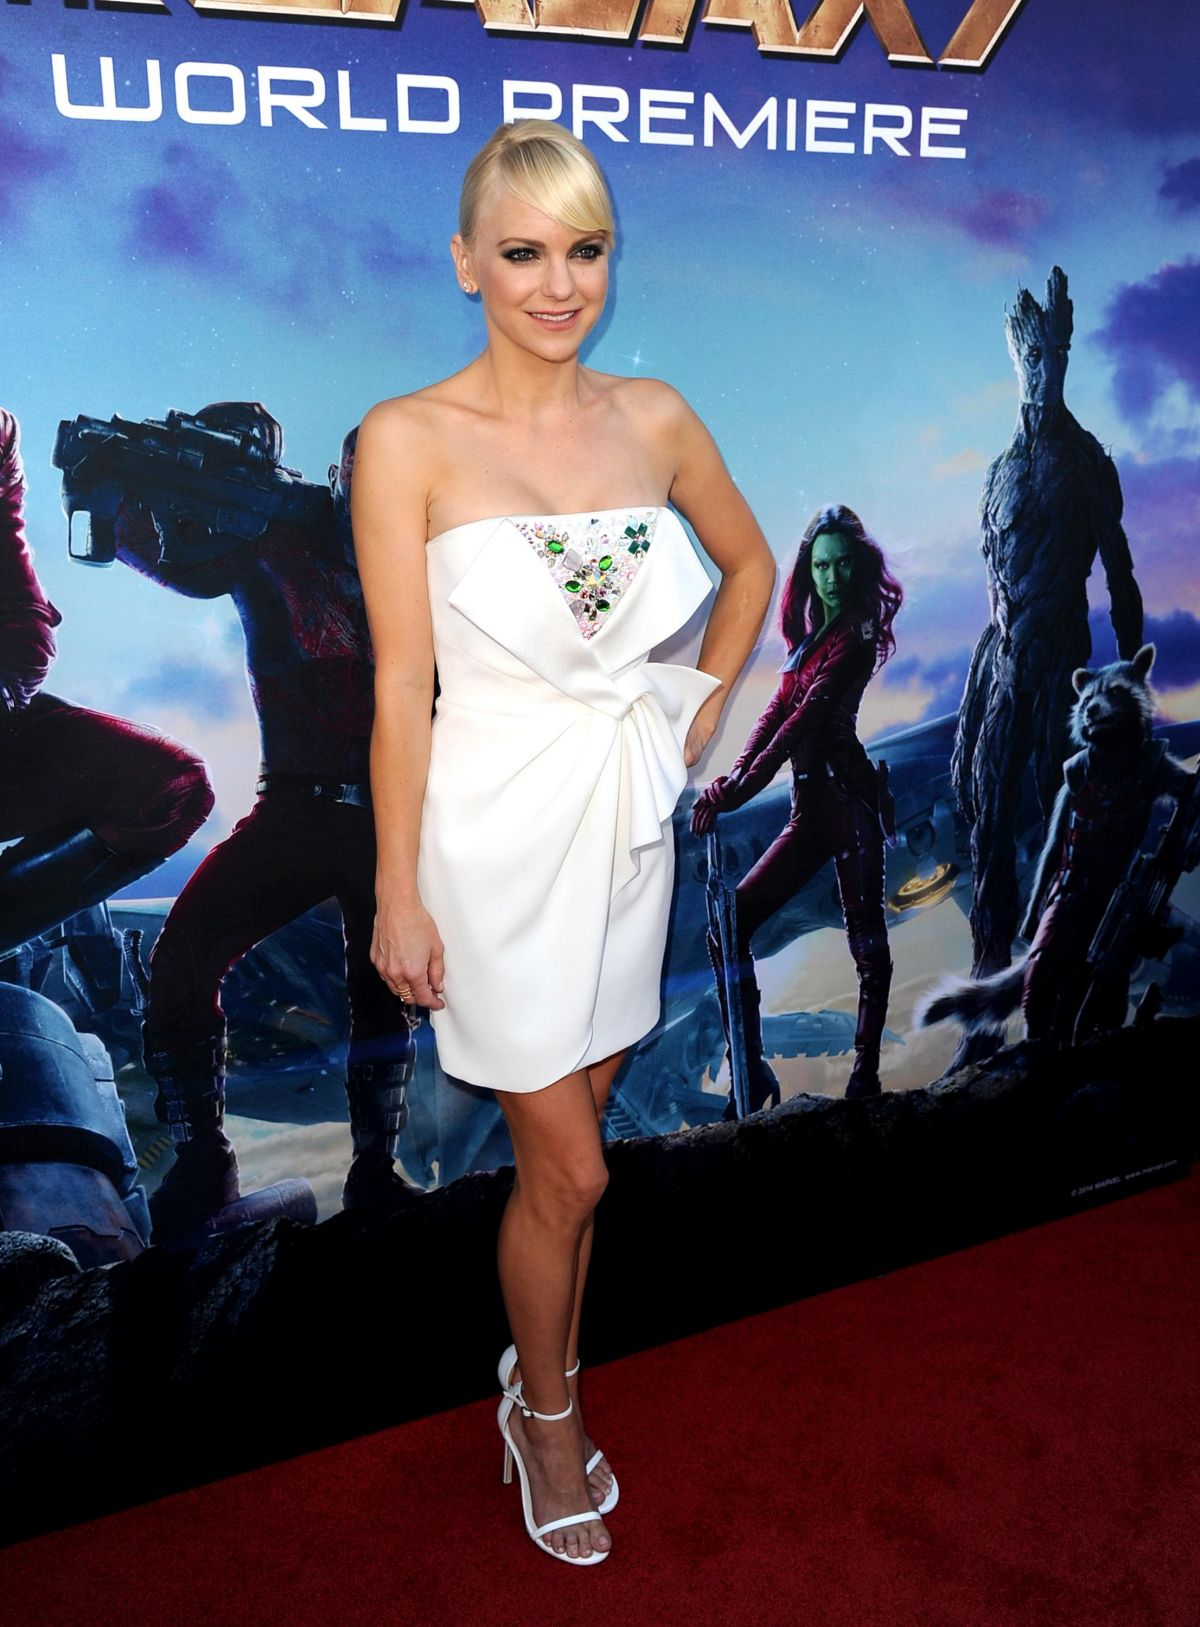 Anna faris at guardians of the galaxy premiere in hollywood anna faris at guardians of the galaxy premiere in hollywood voltagebd Choice Image